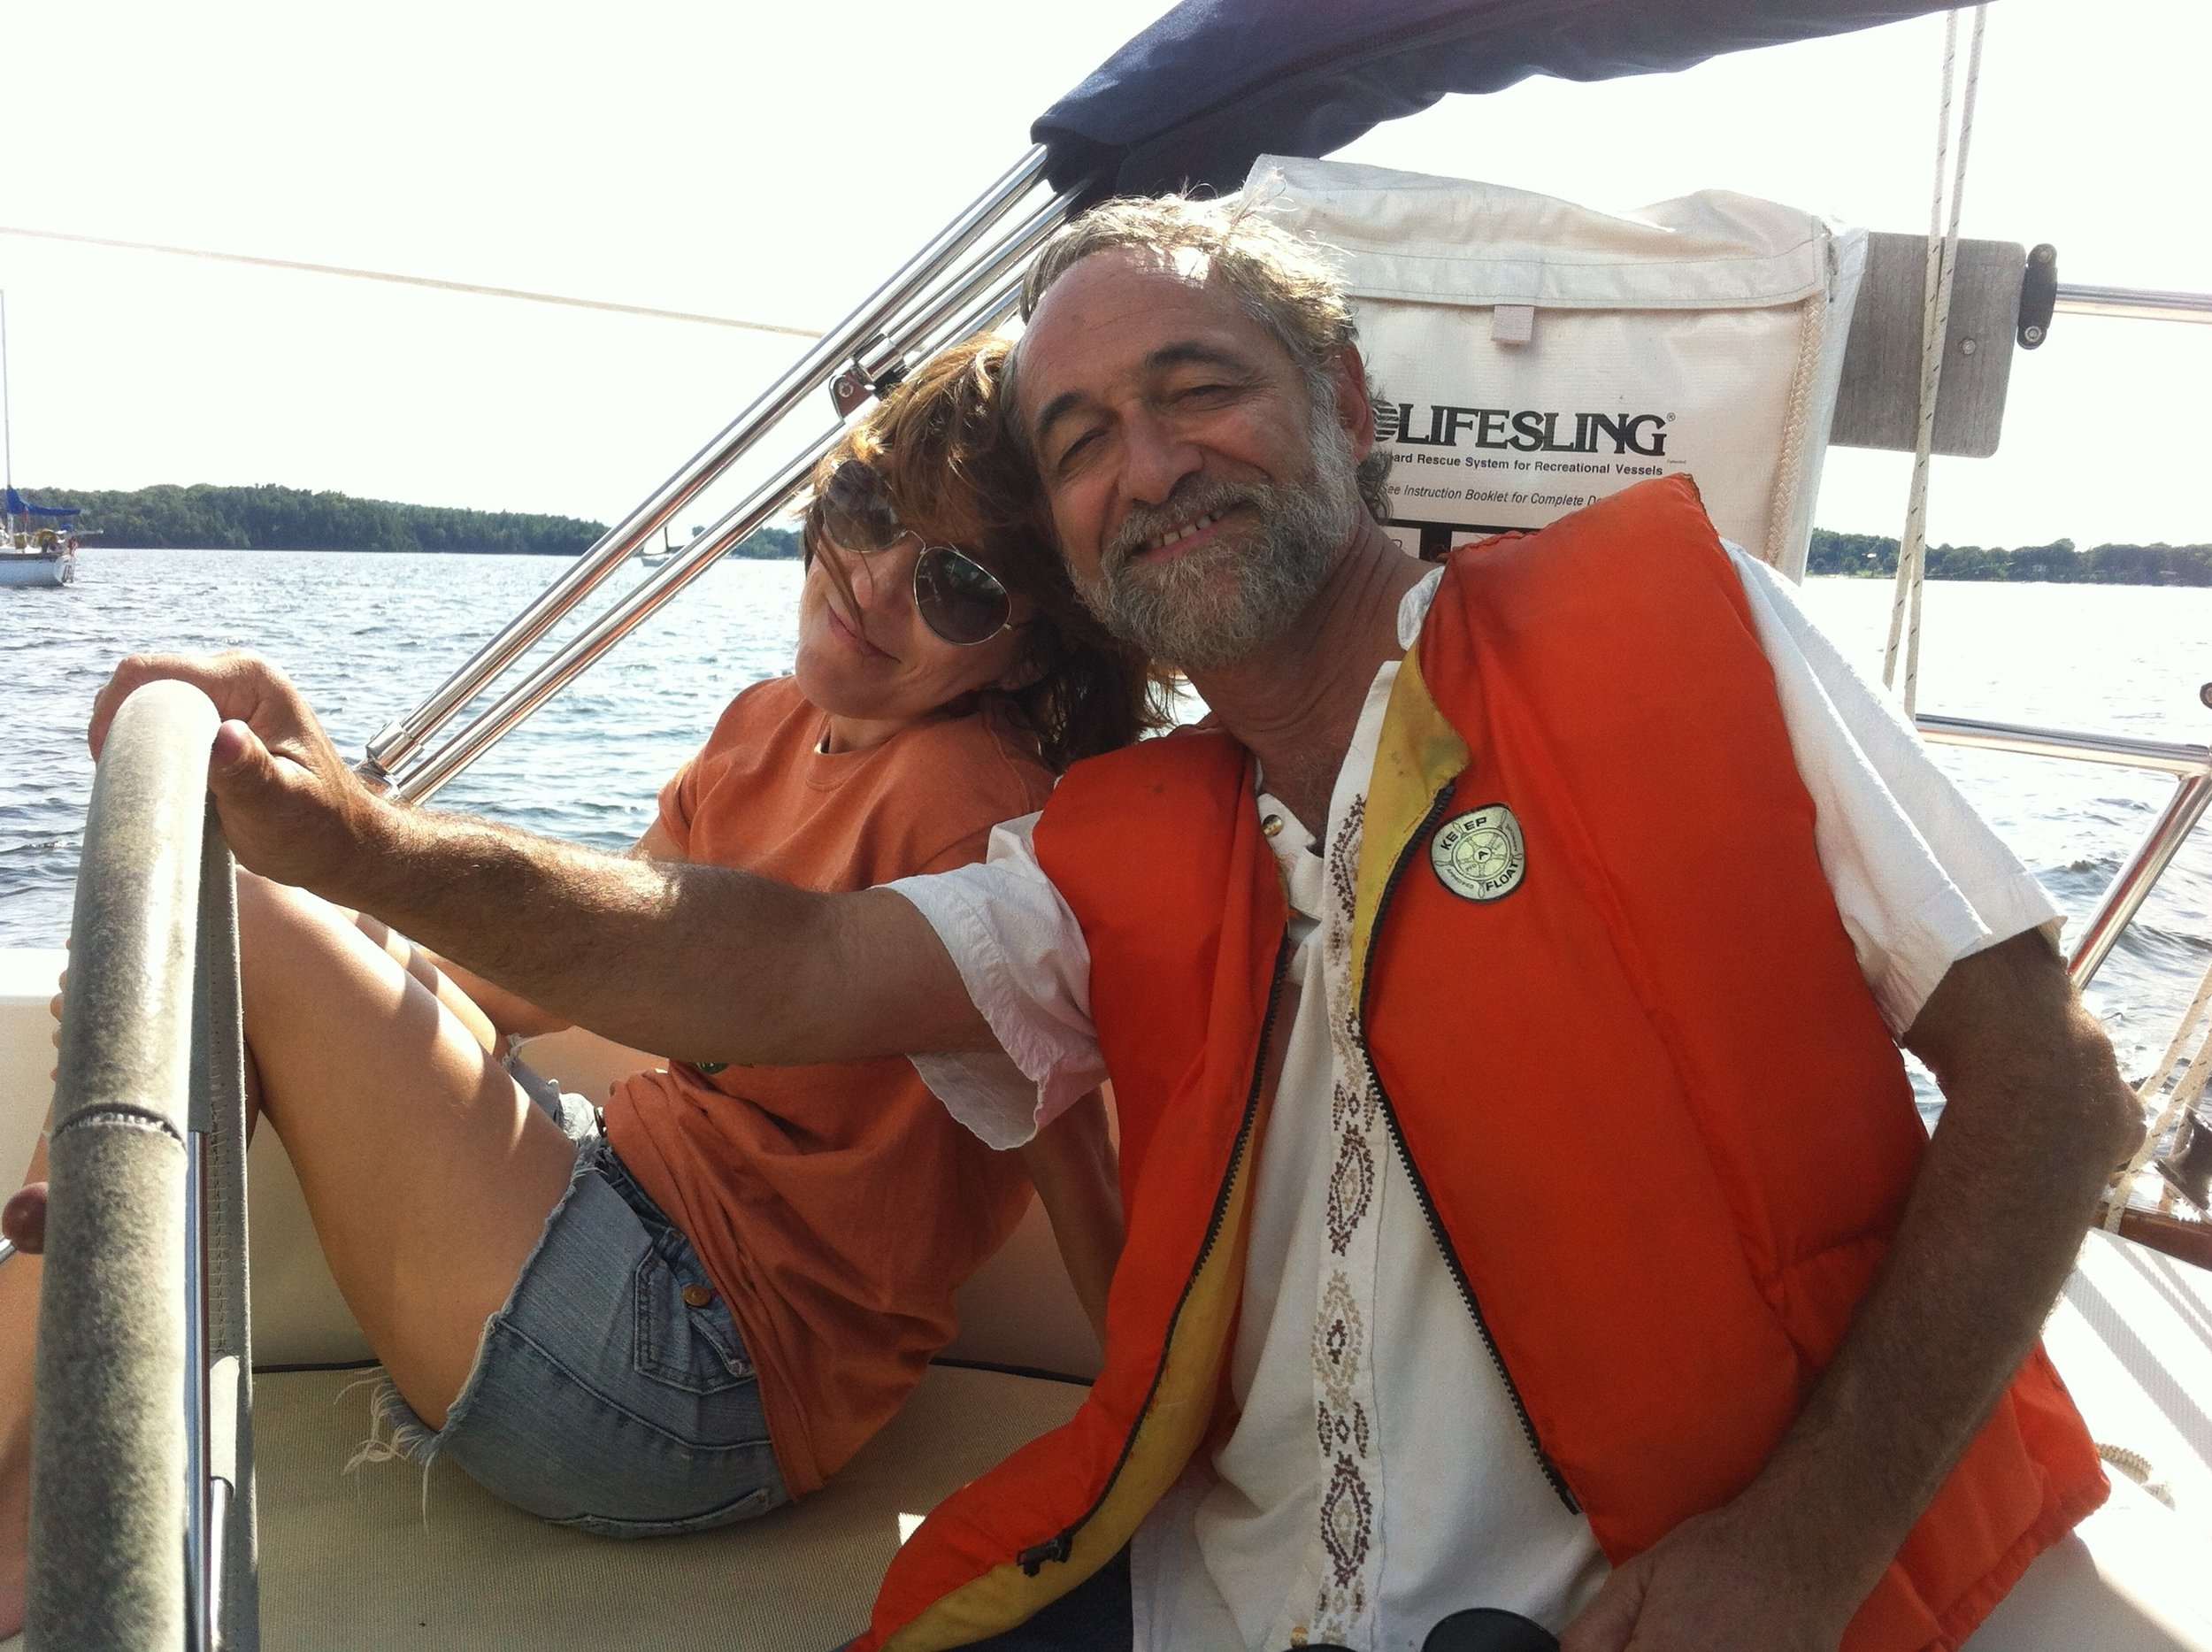 Sailing Tours Burlington Vermont